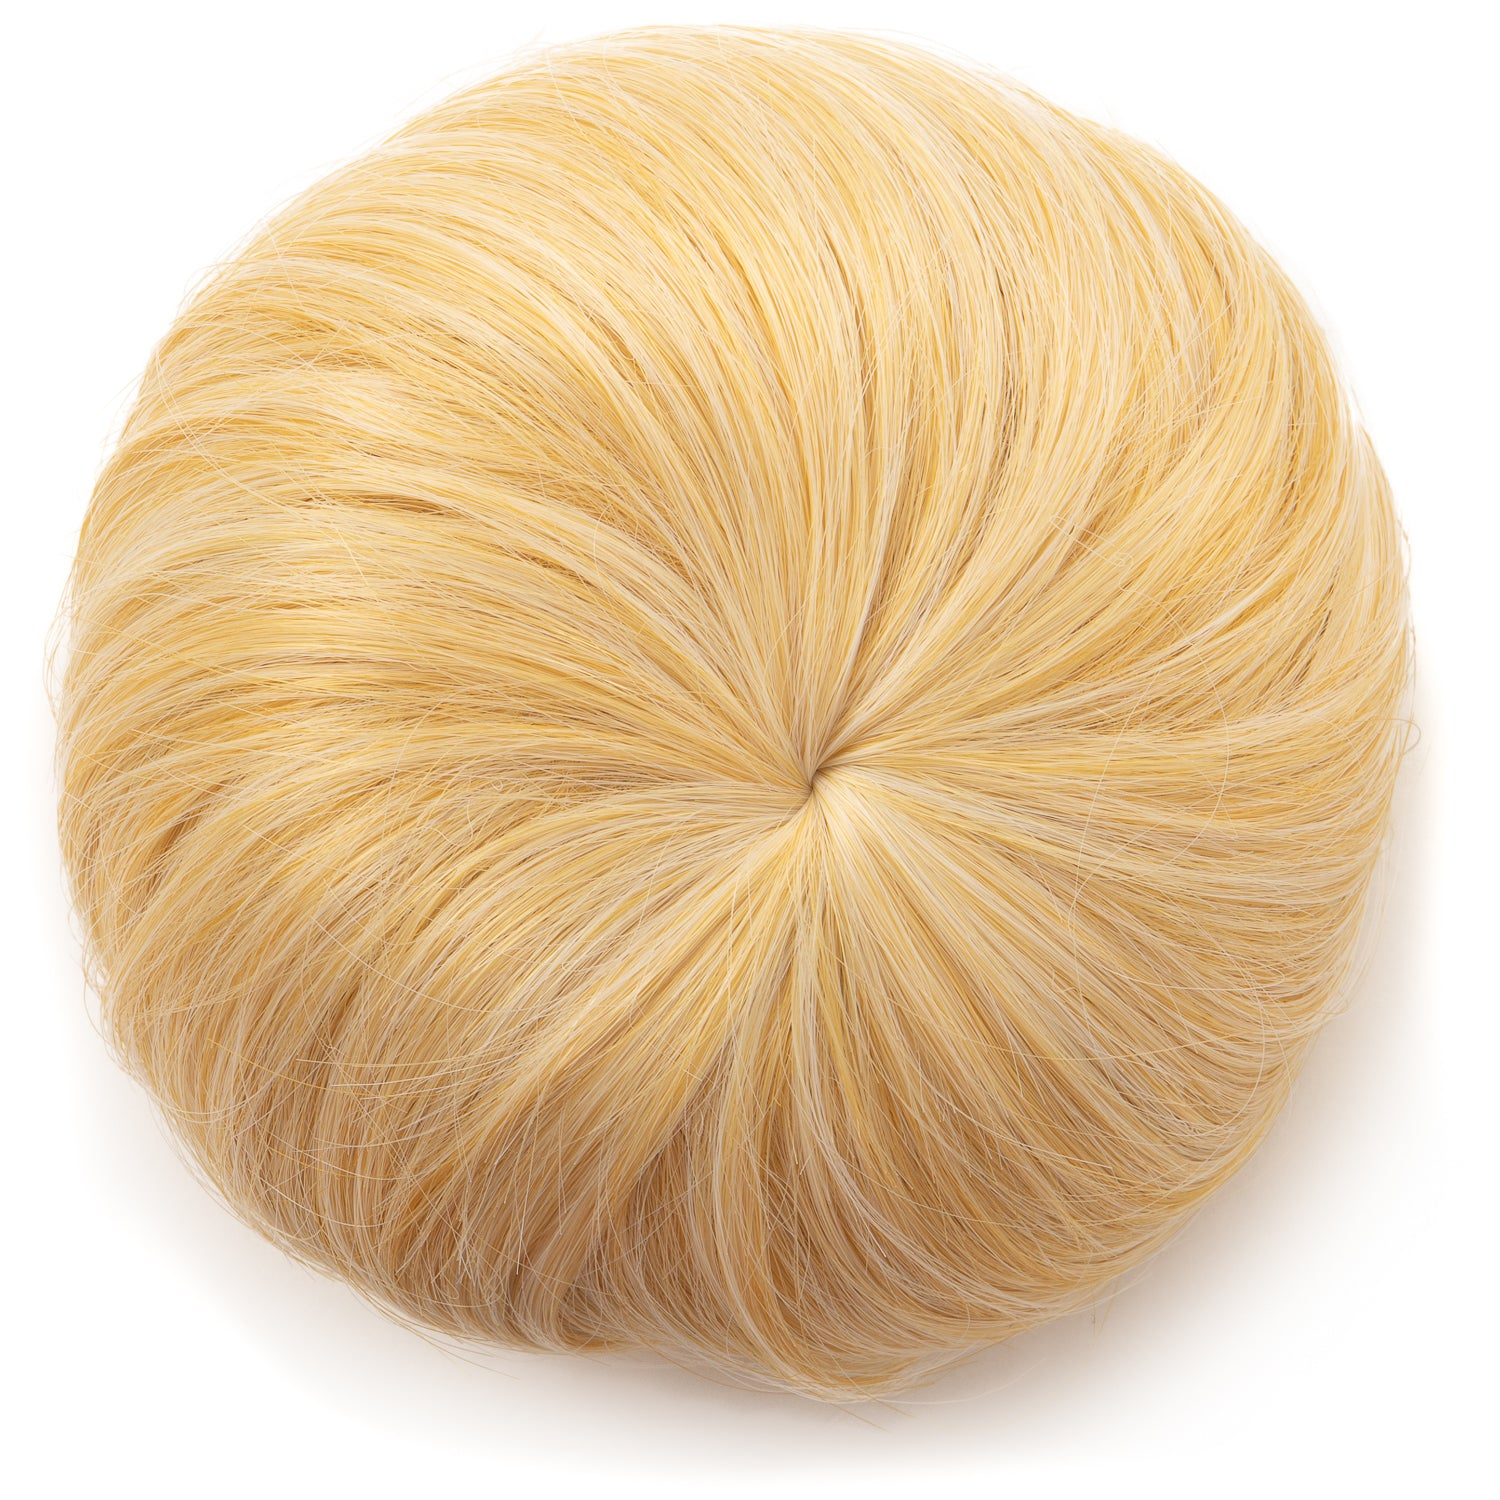 The Spotlight bun -  Blonde Bombshell. (379576832)